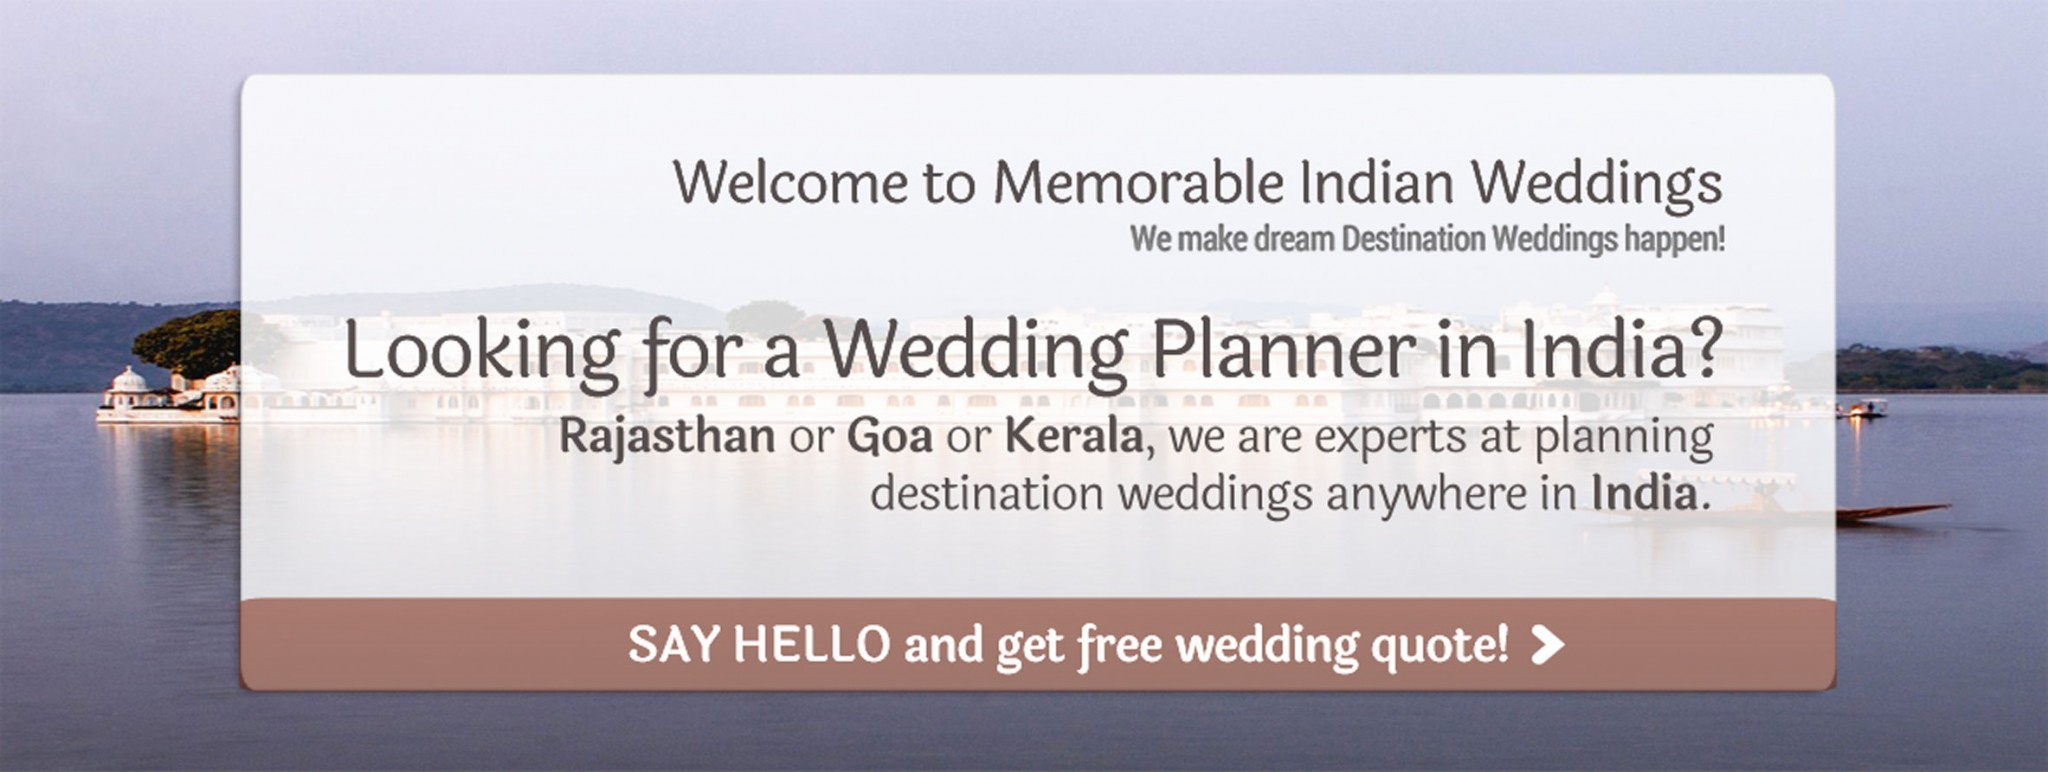 Destination-Wedding-in-India!